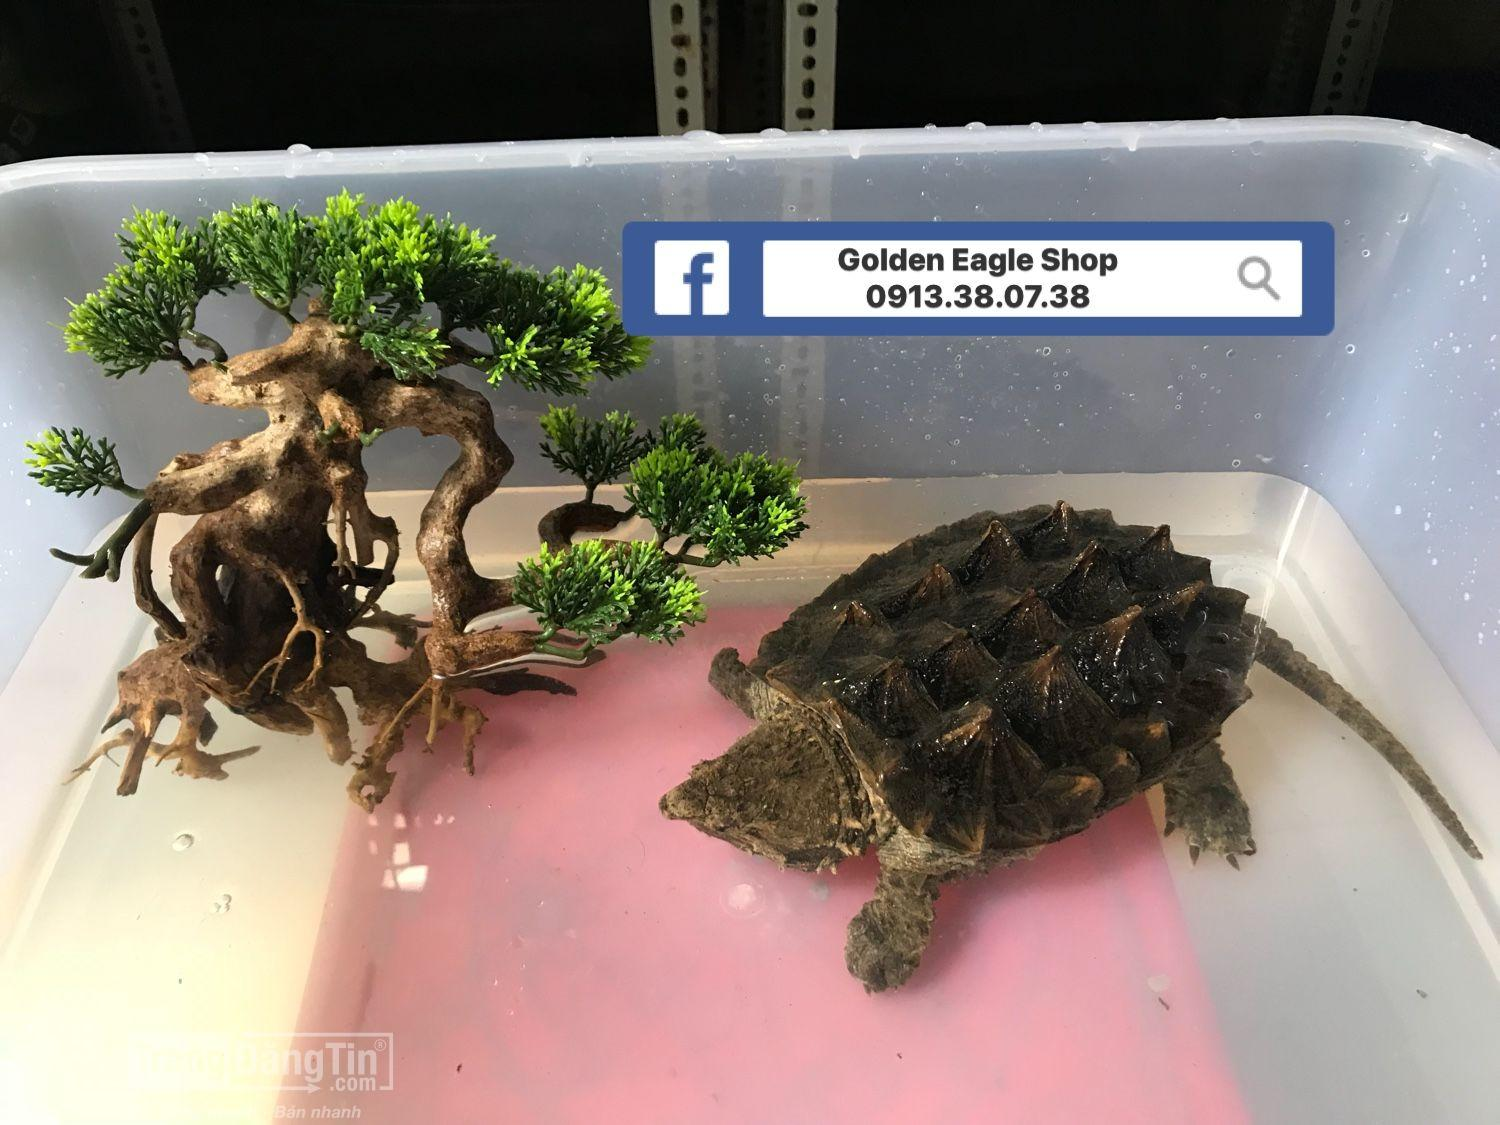 Alligator snapping turtle – Rùa khủng long